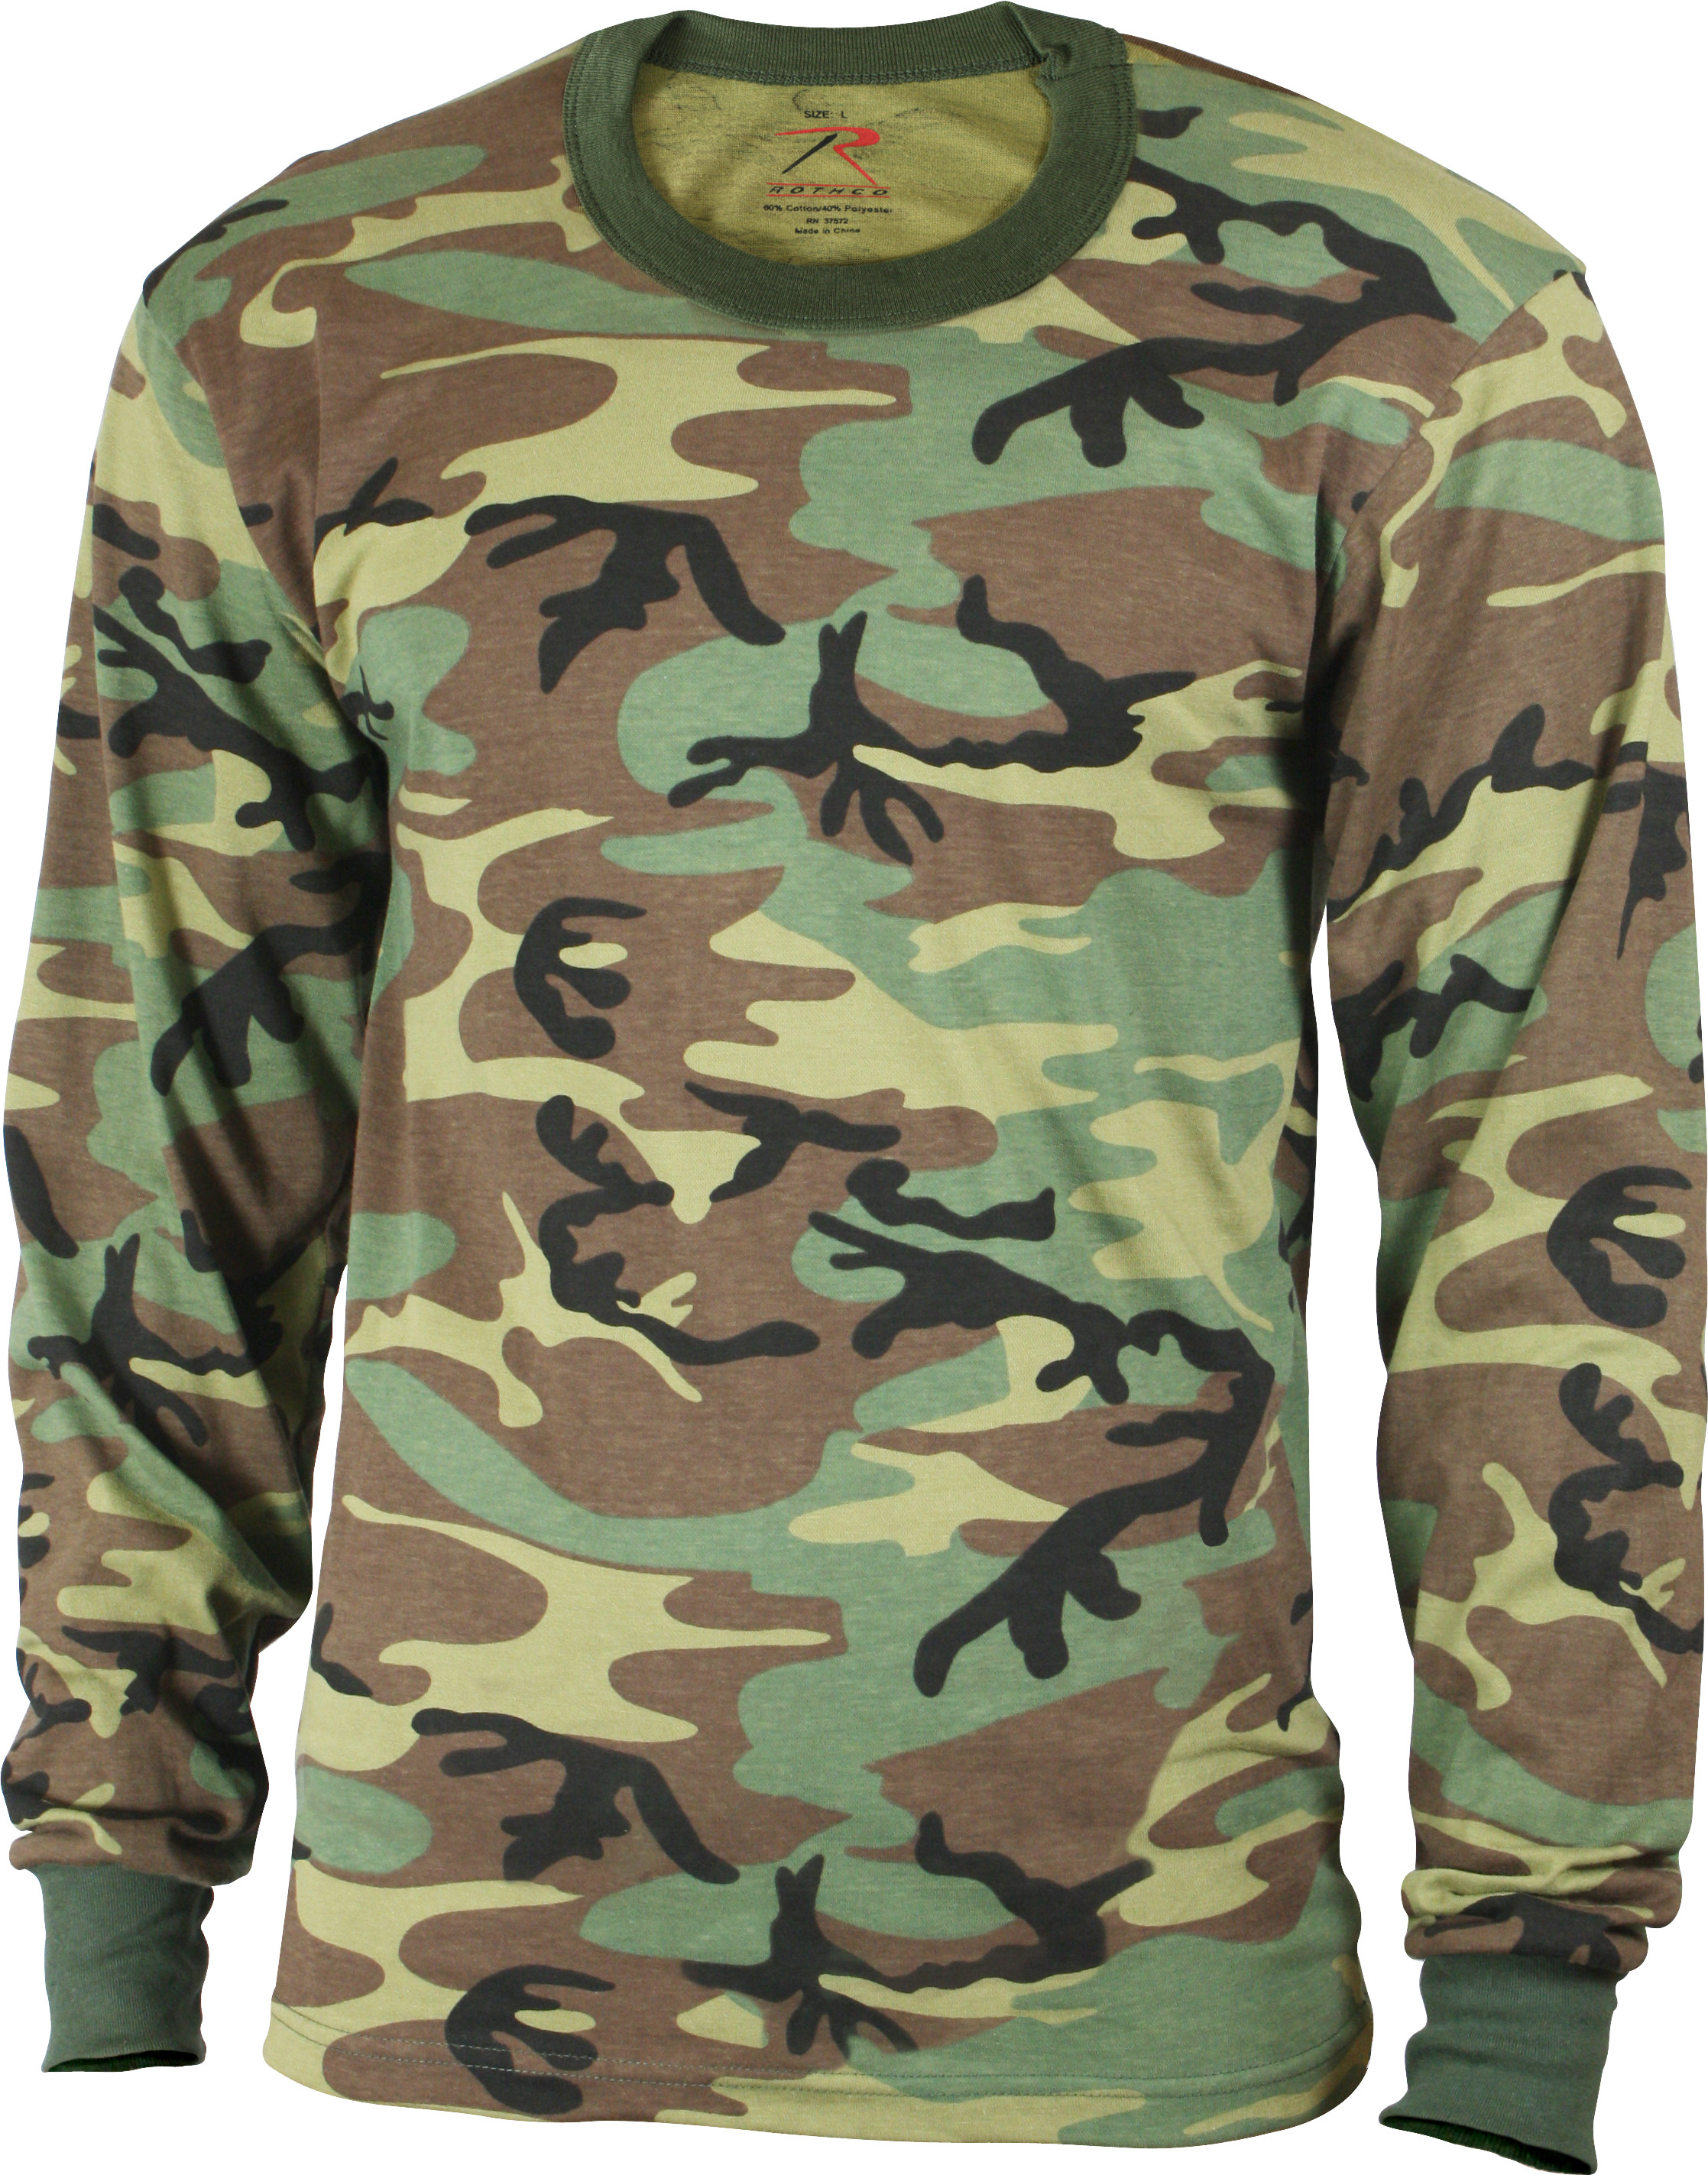 Kids Woodland Camouflage Tactical Camo Long Sleeve T-Shirt Crew ... f245eb240be